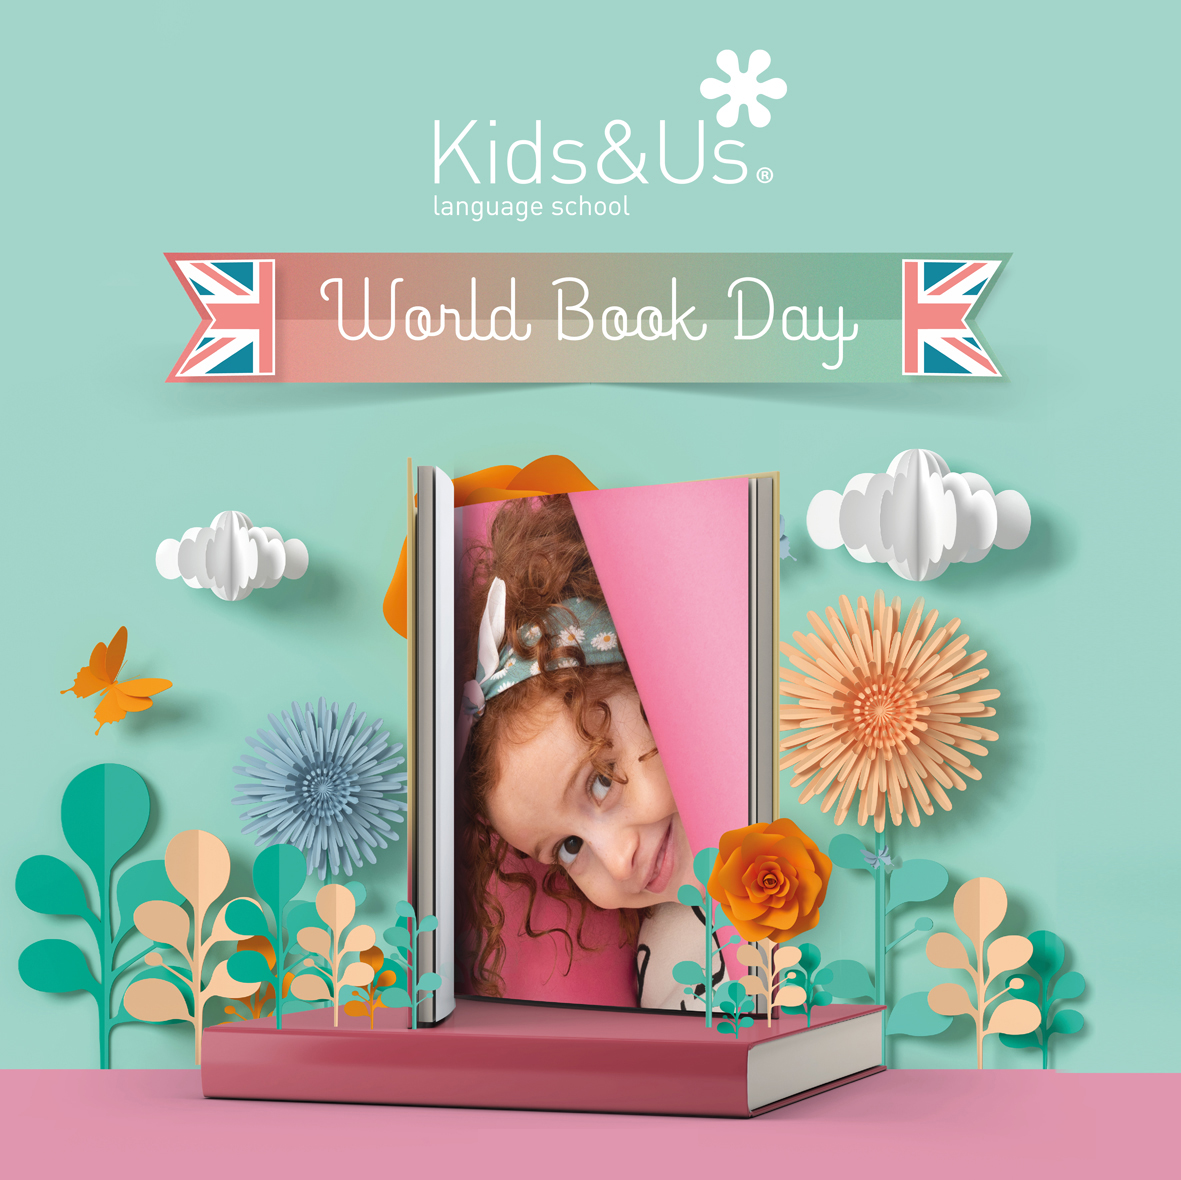 Celebra el World Book Day amb Kids&Us!